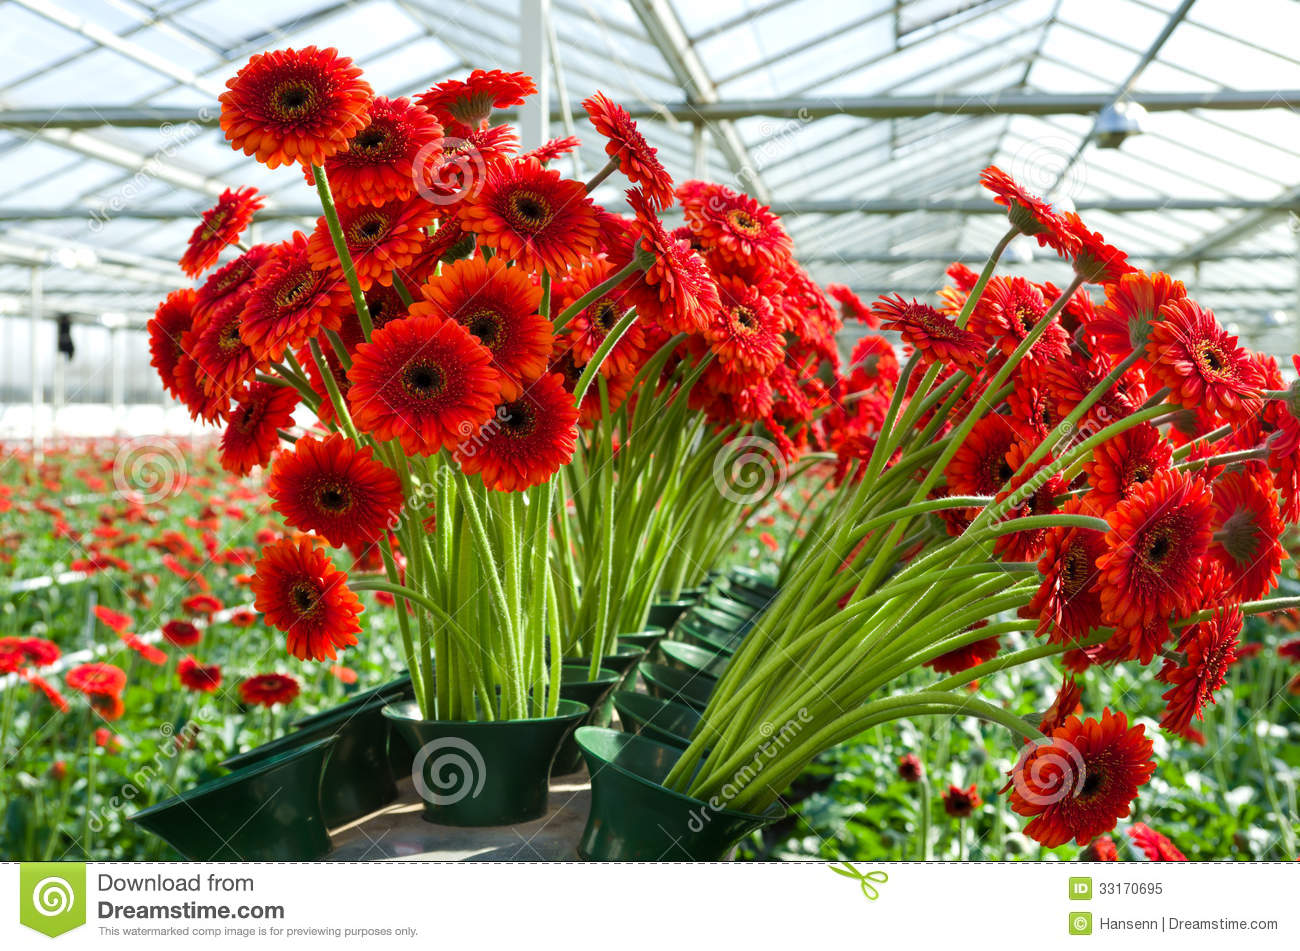 Flowers In A mercial Greenhouse Royalty Free Stock Image